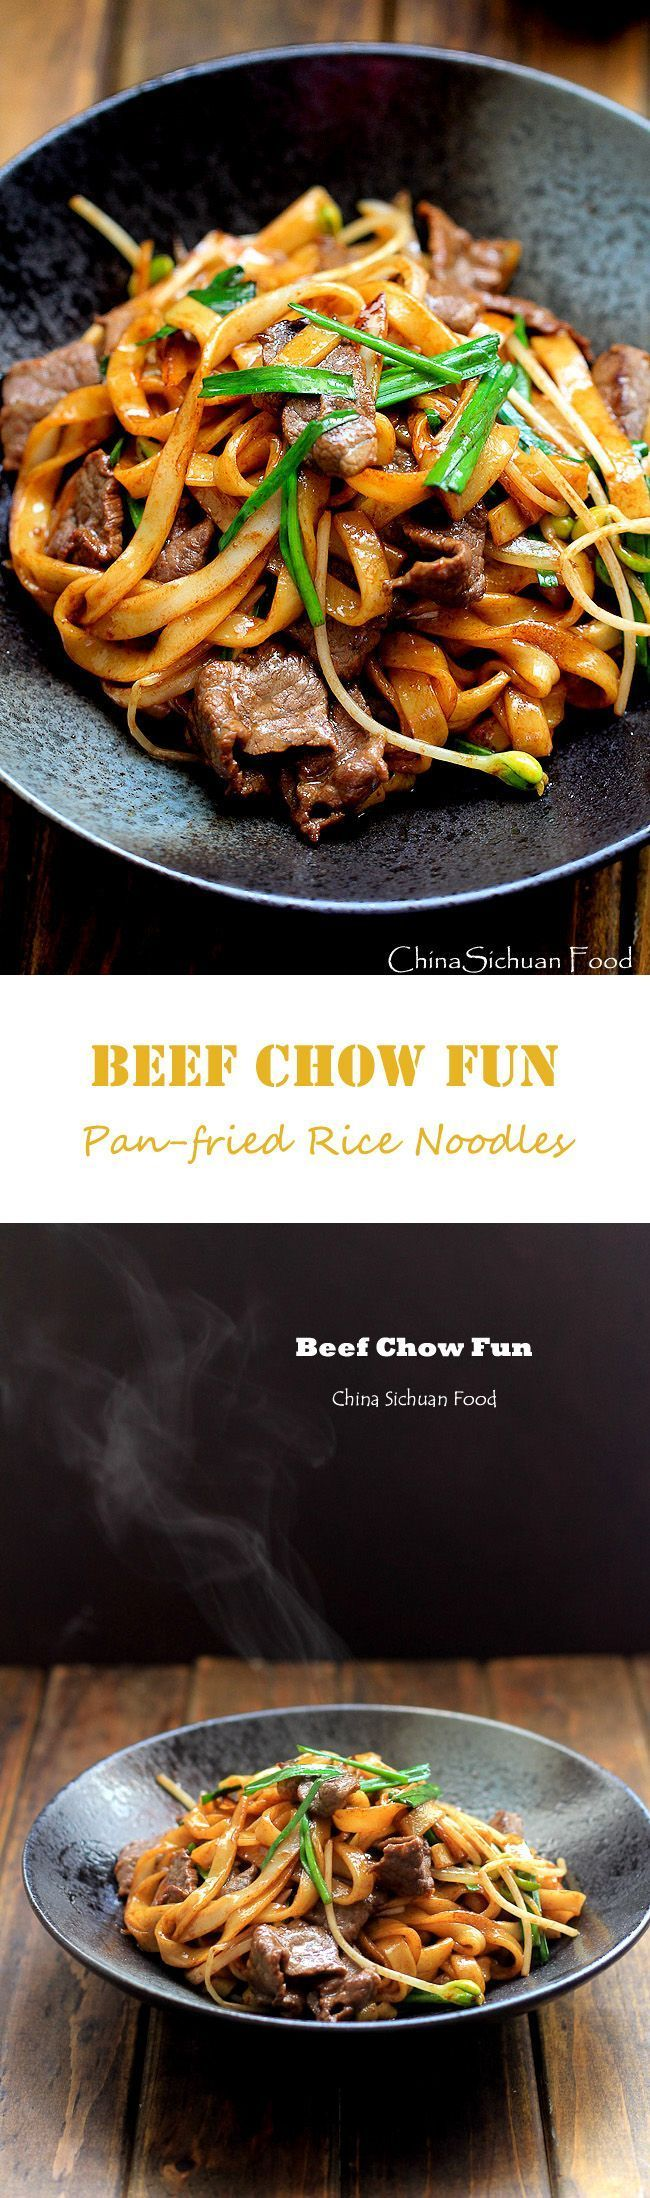 ~~Beef Chow Fun | Beef stir-fried with rice noodle, bean sprouts, spring onions and Chinese chives is a famous Cantonese dish | China Sichuan Food~~